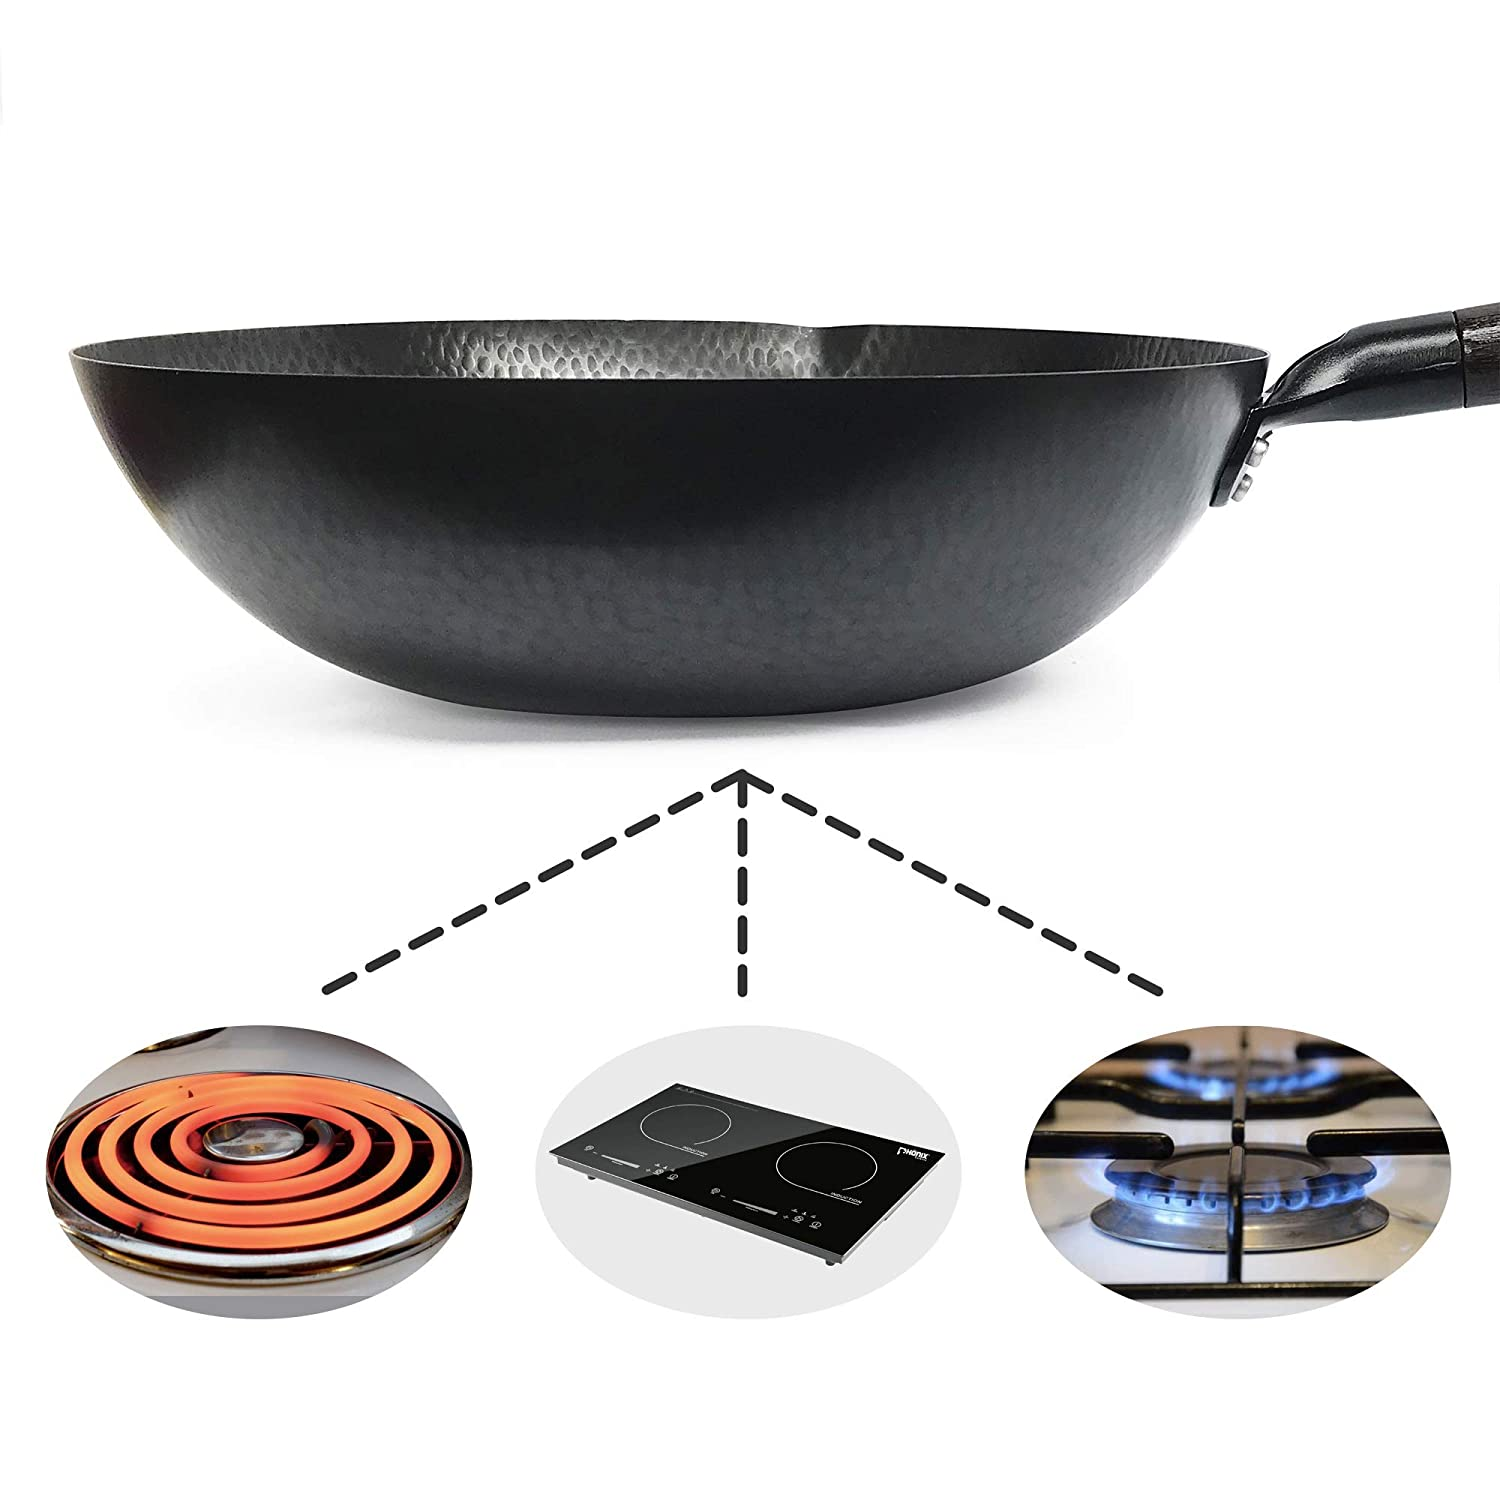 Souped Up Recipes – Flat Bottom Wok For Electric, Induction and Gas Stoves Lid, Spatula and Seasoning Video Guide Included